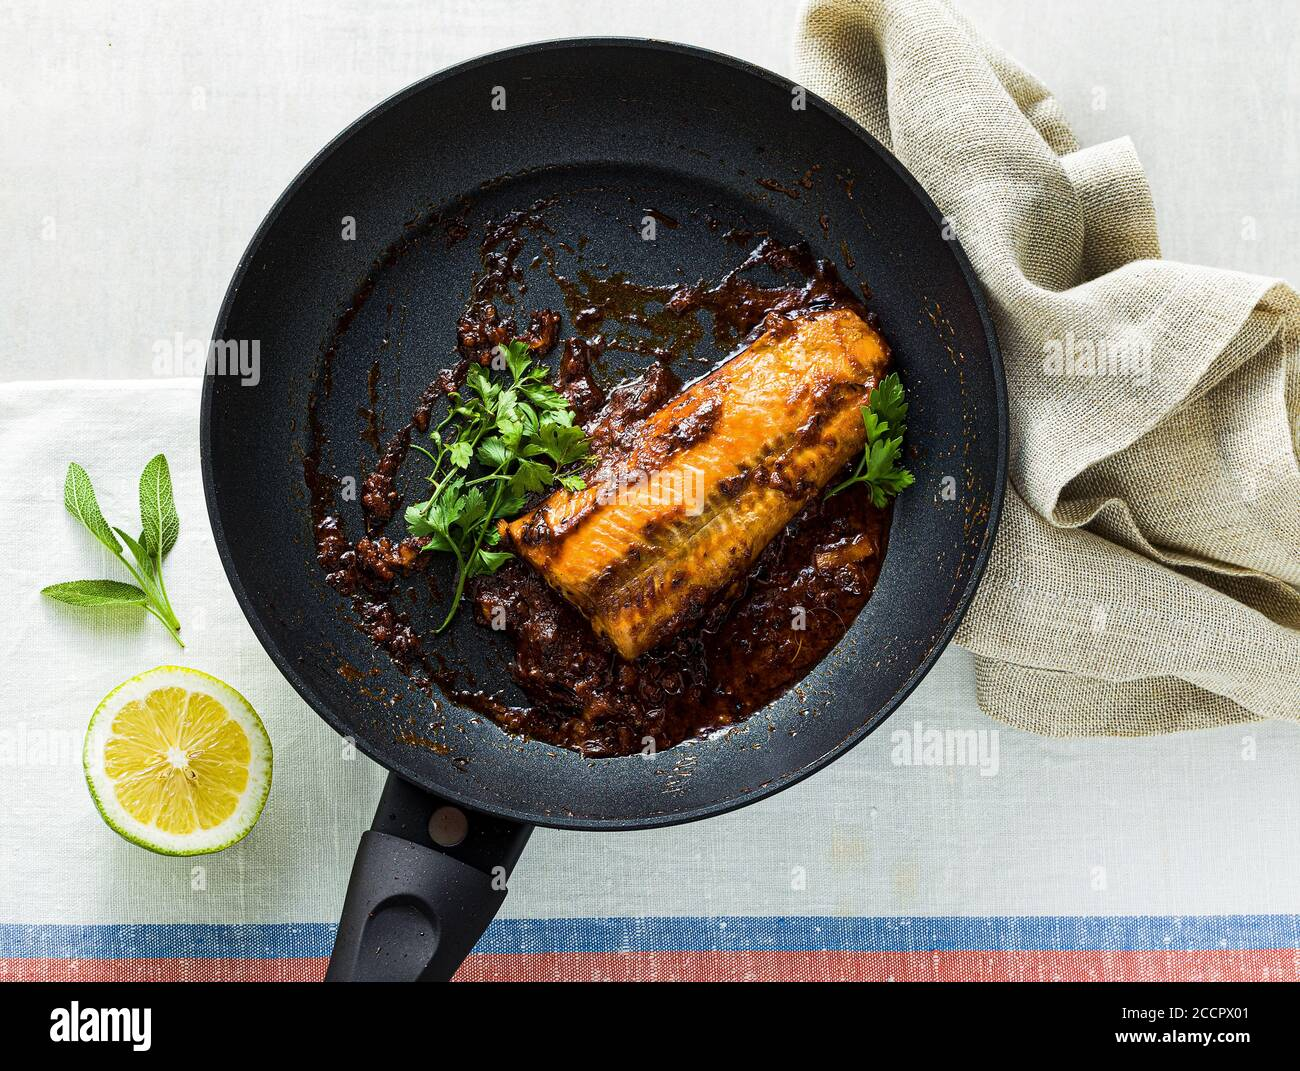 fillet of pink salmon in tomato-coconut sauce in a non-stick frying pan with parsley on a table with a linen tablecloth. healthy family food Stock Photo